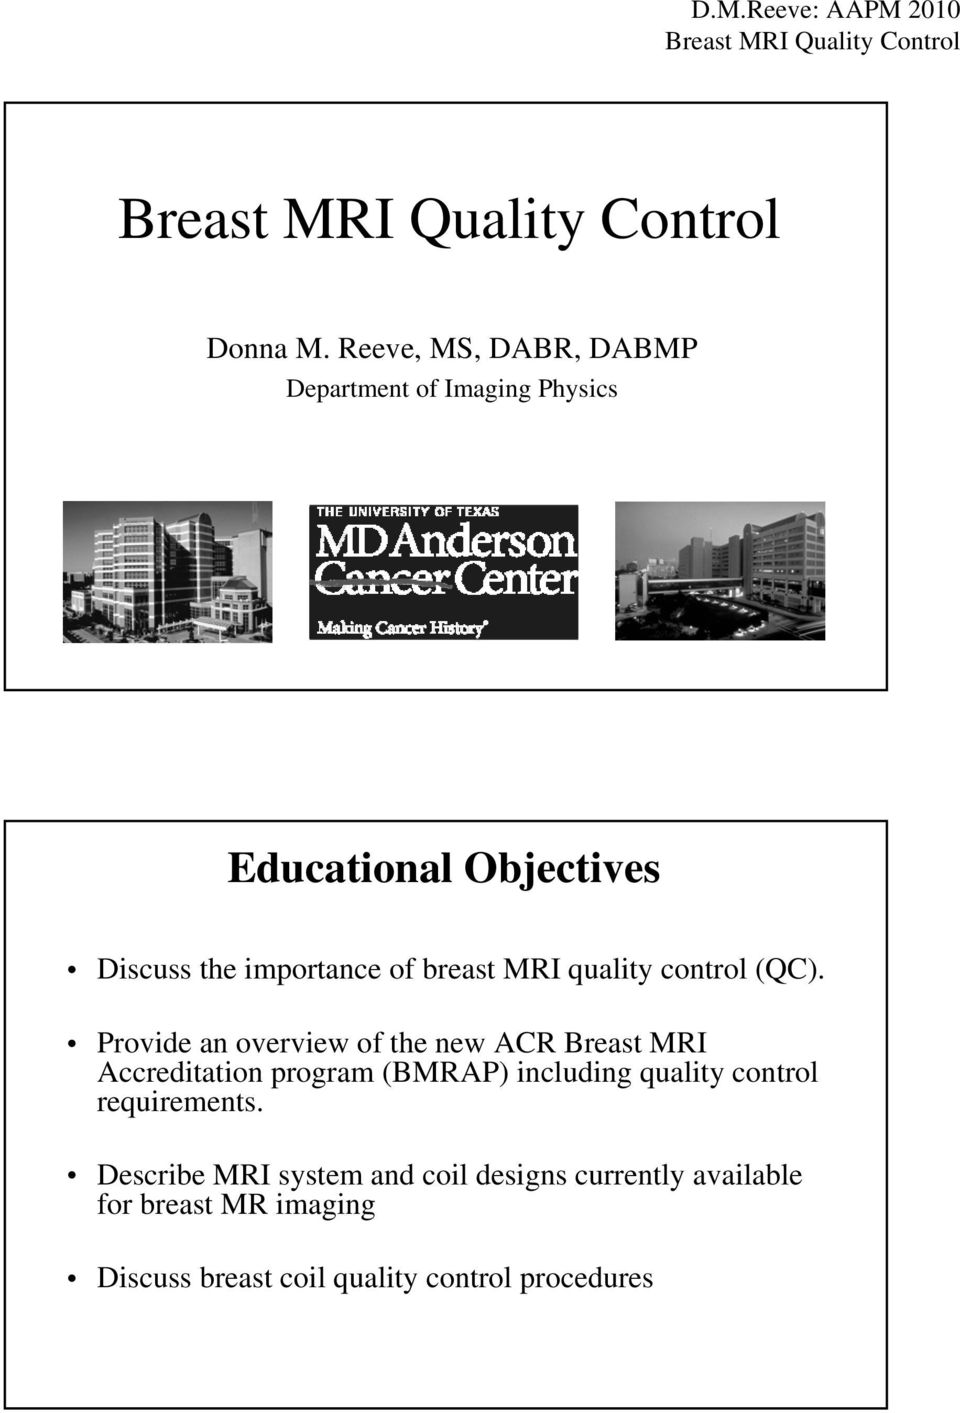 importance of breast MRI quality control (QC).